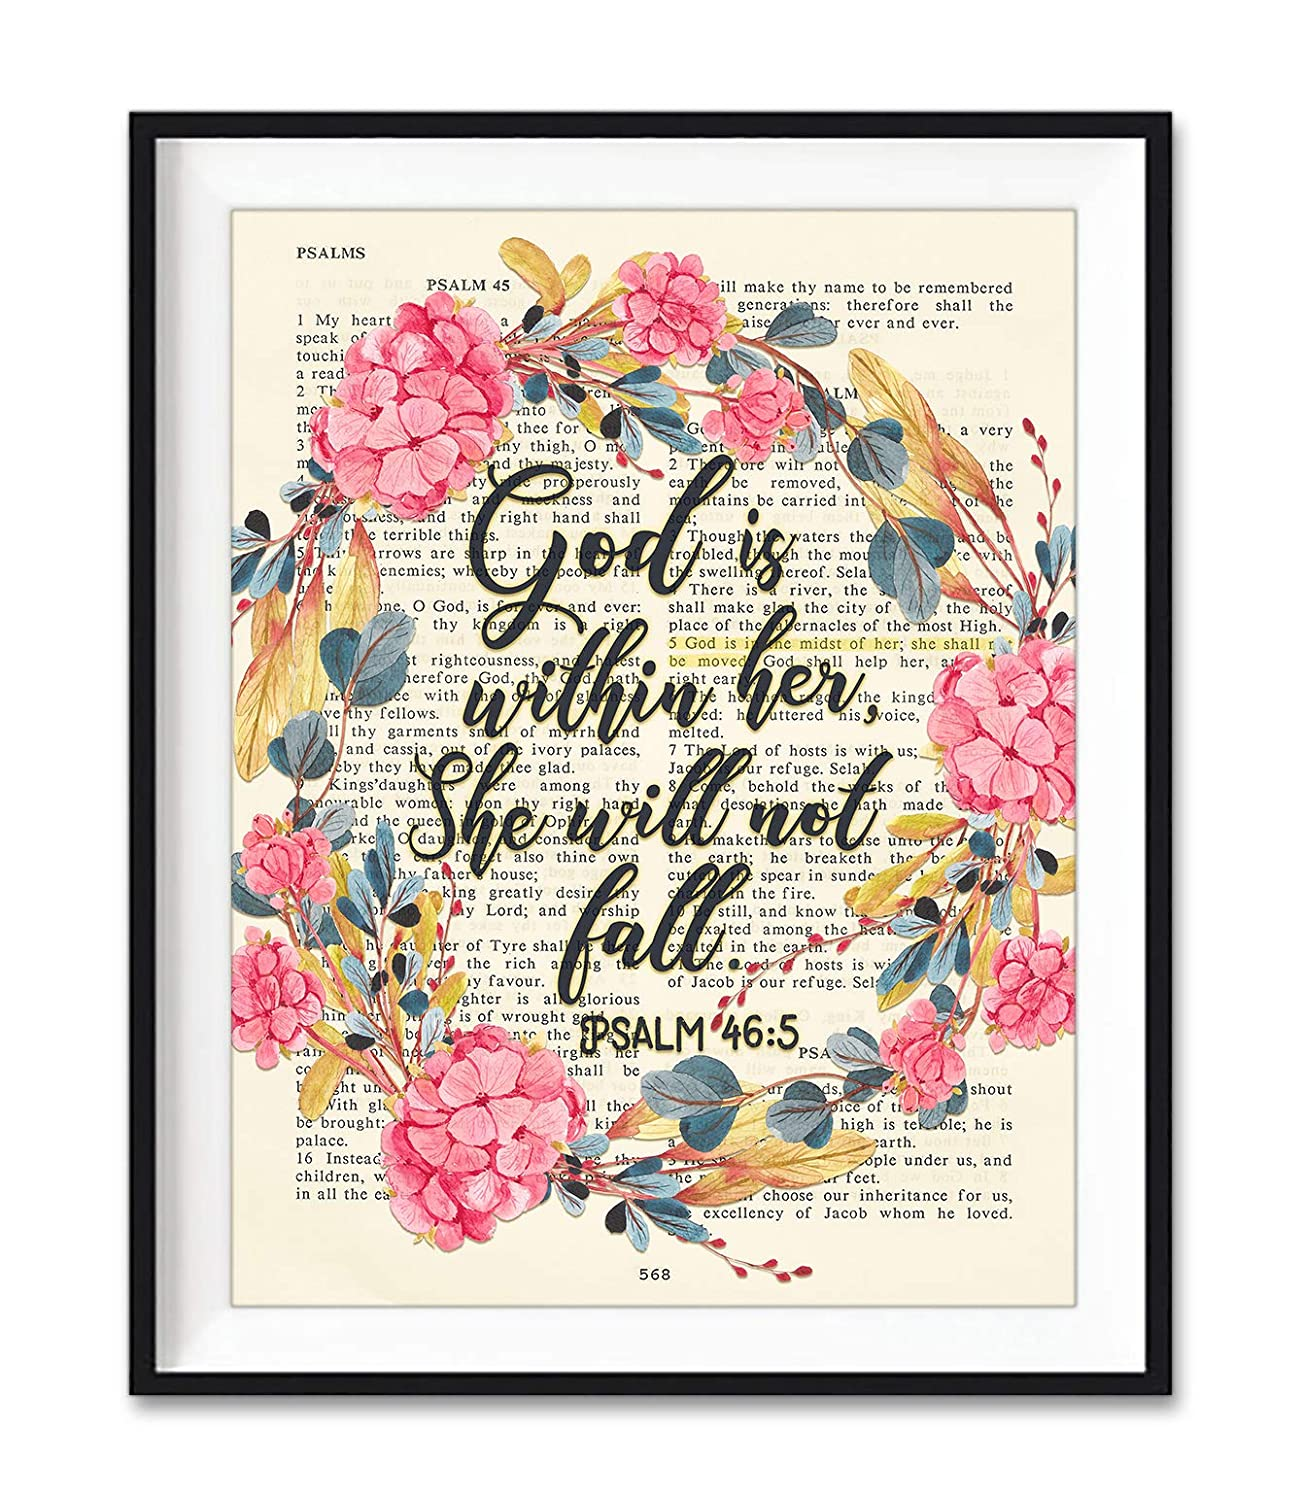 God Is Within High order Her She Will Not Industry No. 1 46:5 Fall Art Unf Psalm Print